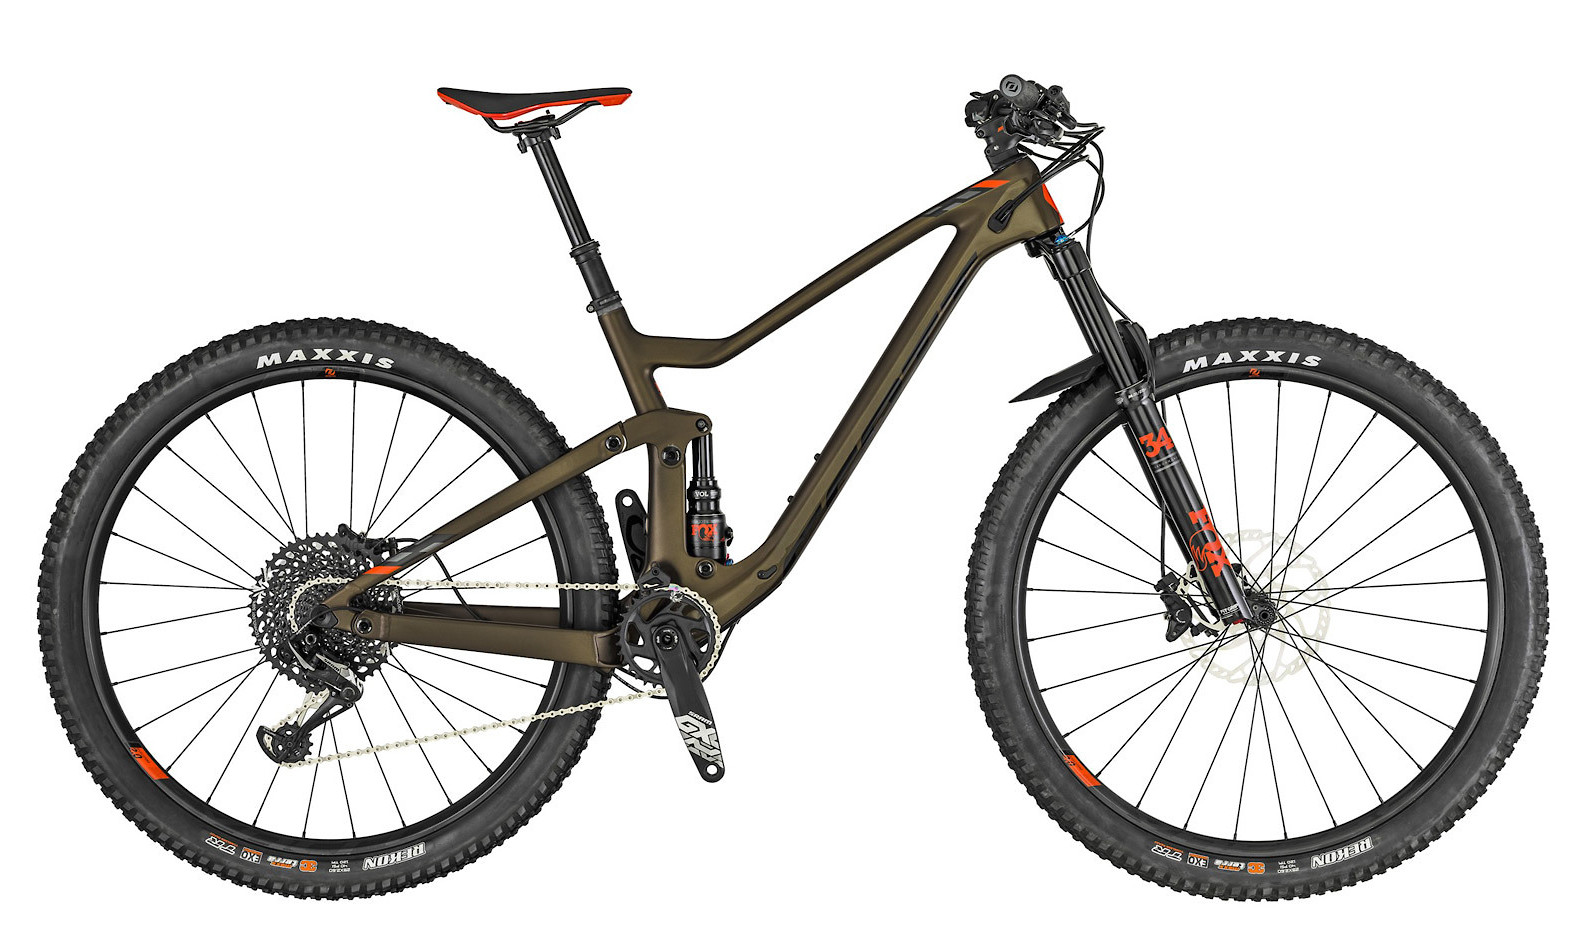 e236f310e42 2019 Scott Genius 920 Bike - Reviews, Comparisons, Specs - Mountain Bikes -  Vital MTB